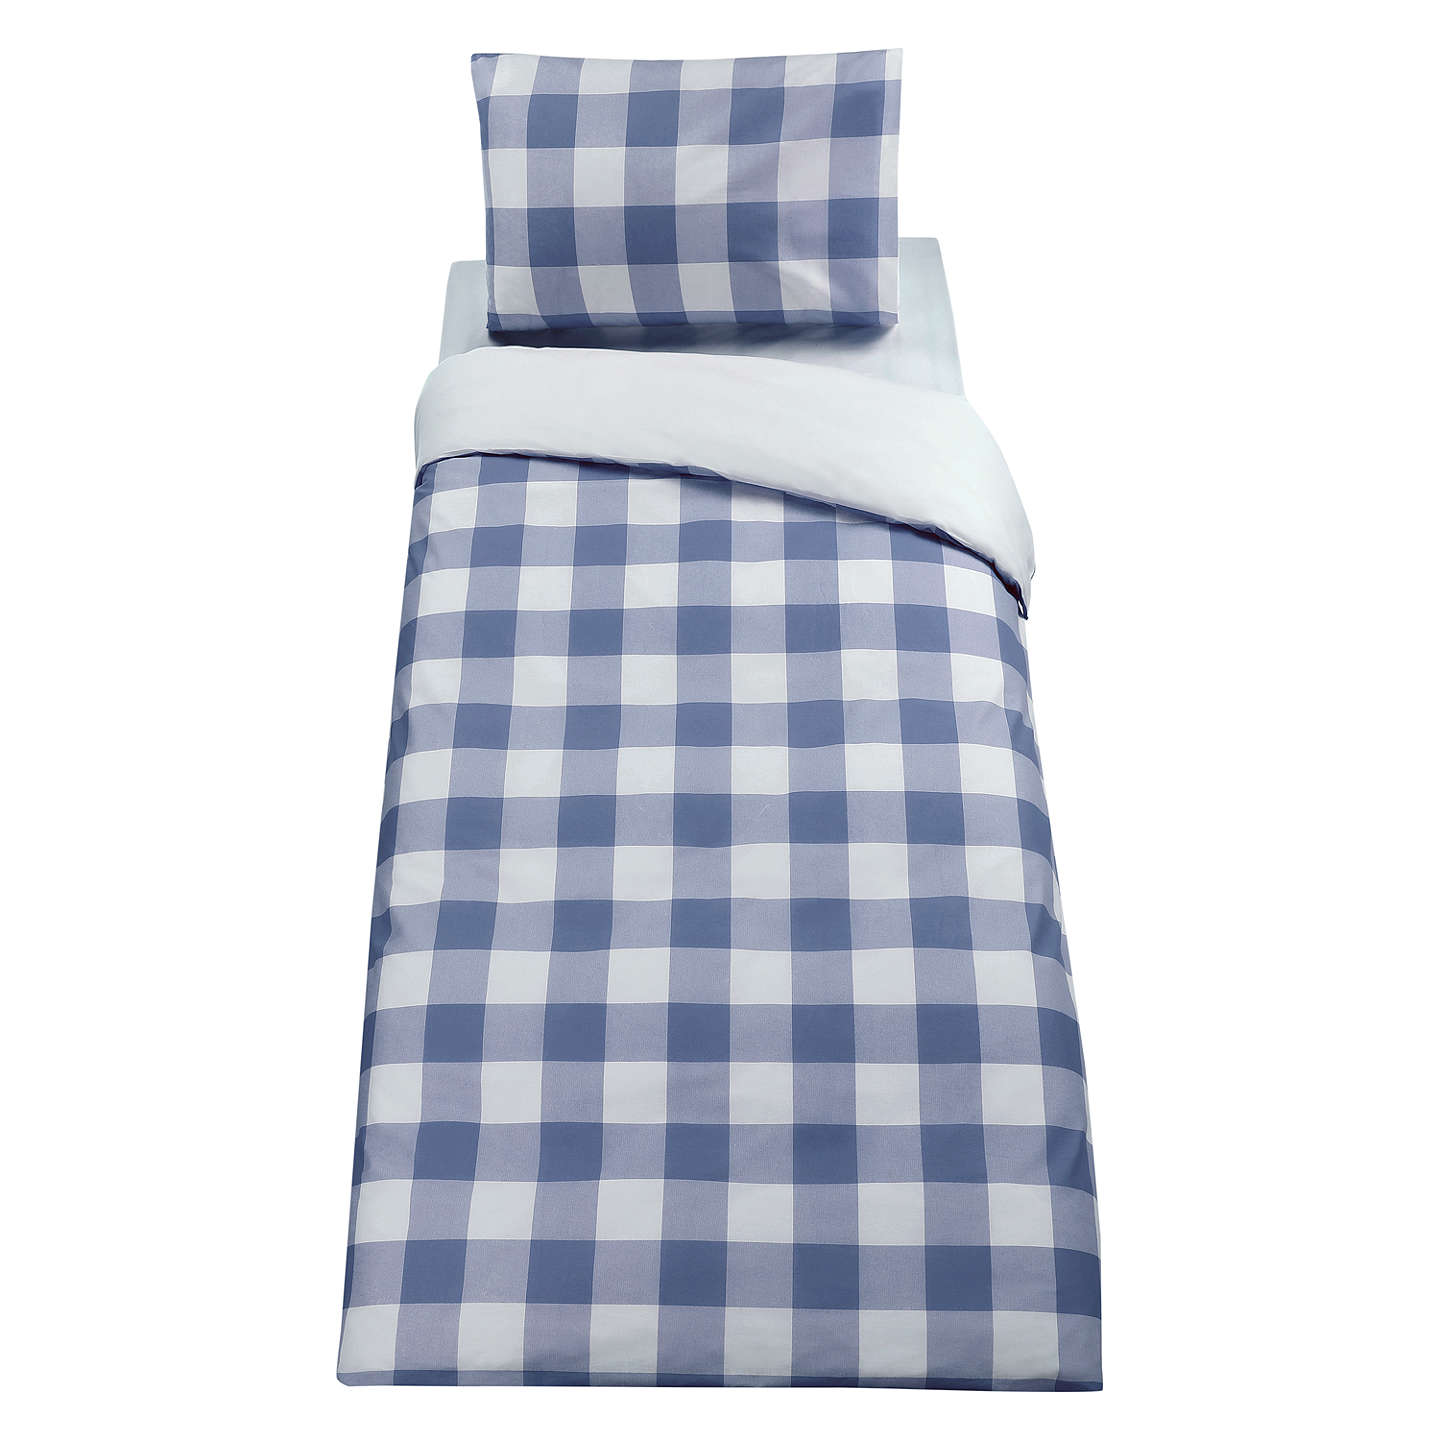 Buylittle home at John Lewis Gingham Check Duvet Cover and Pillowcase Set, Single, Blue Online at johnlewis.com